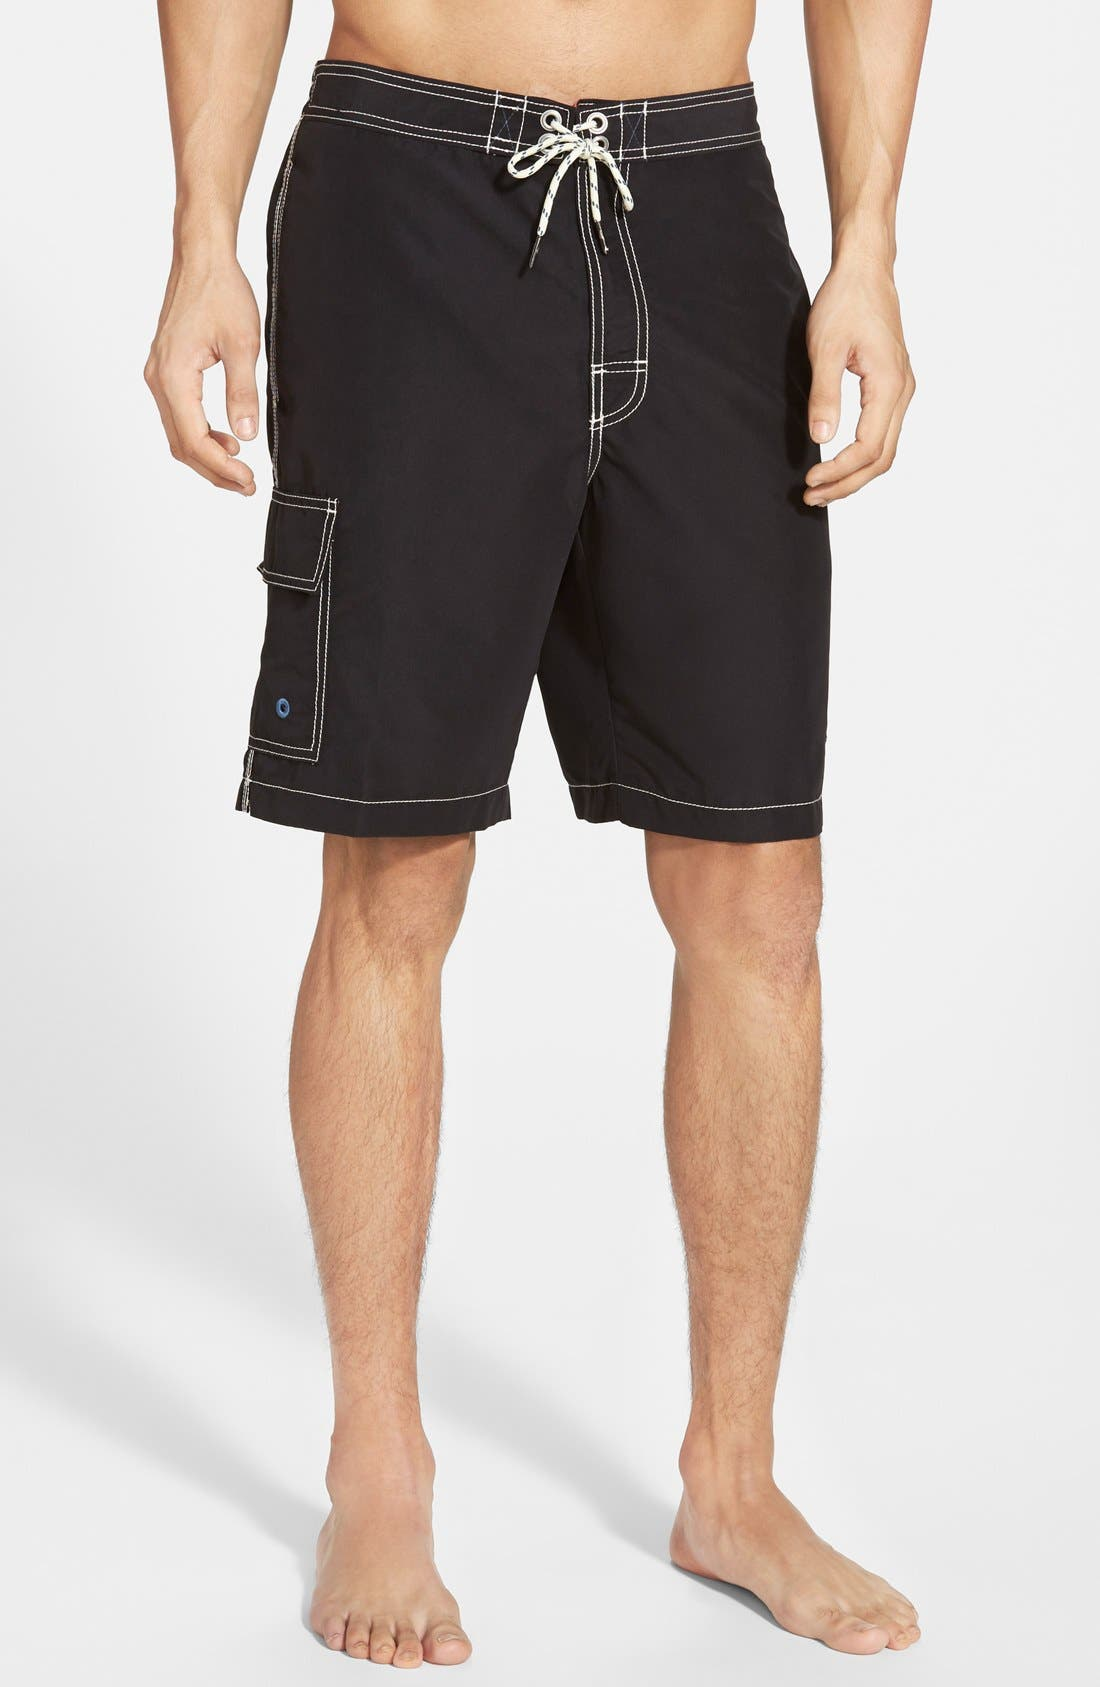 Alternate Image 1 Selected - Tommy Bahama 'Baja Poolside' Board Shorts